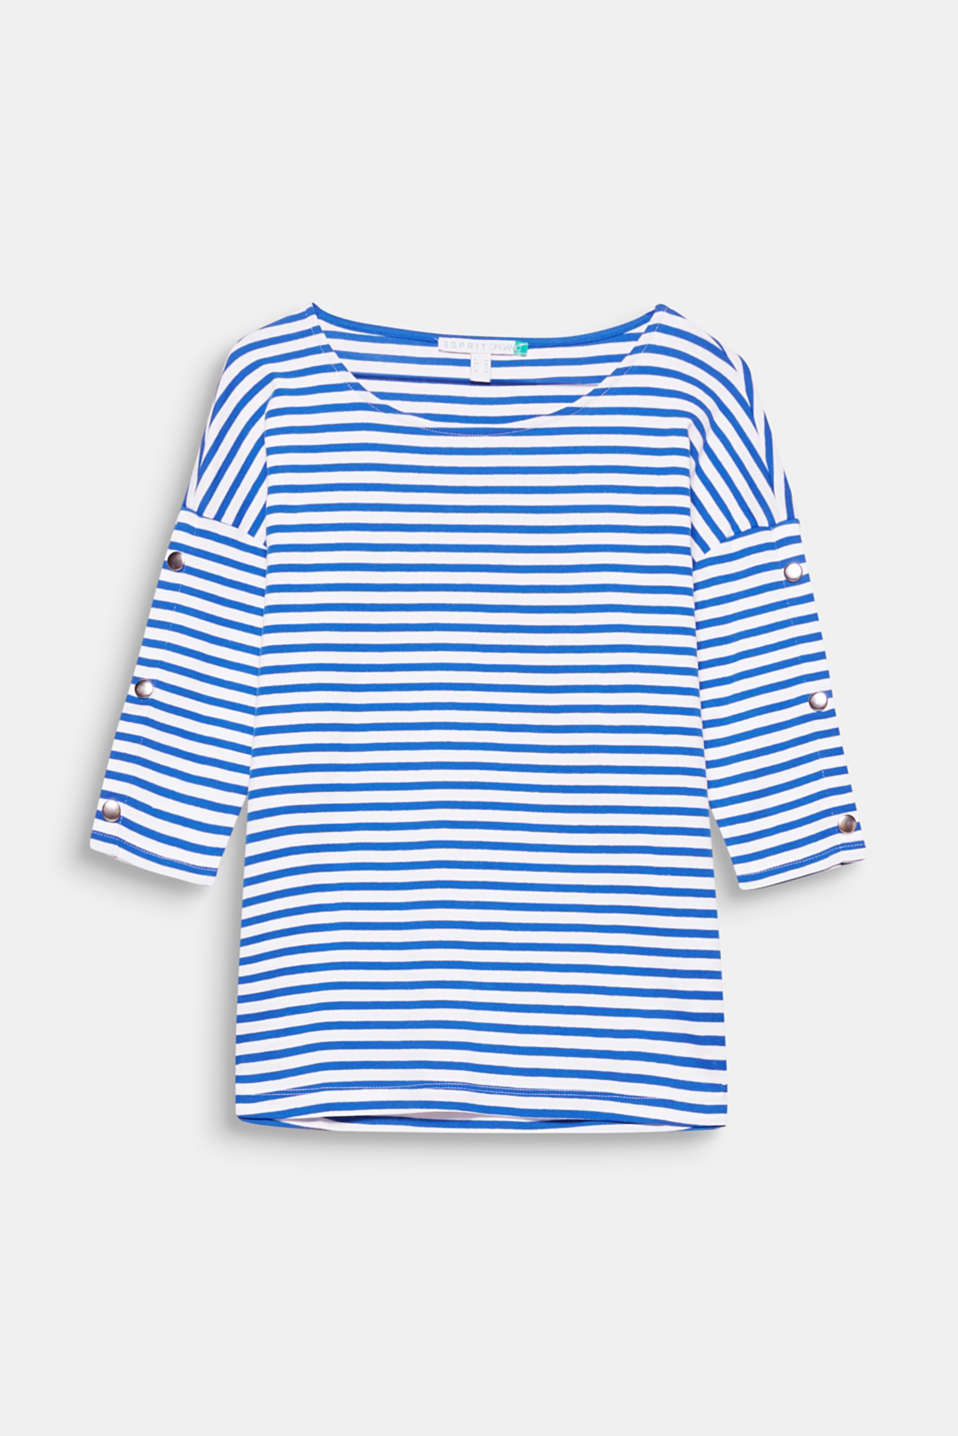 This striped T-shirt in environmentally friendly, organic cotton with press studs on the sleeves is super casual!